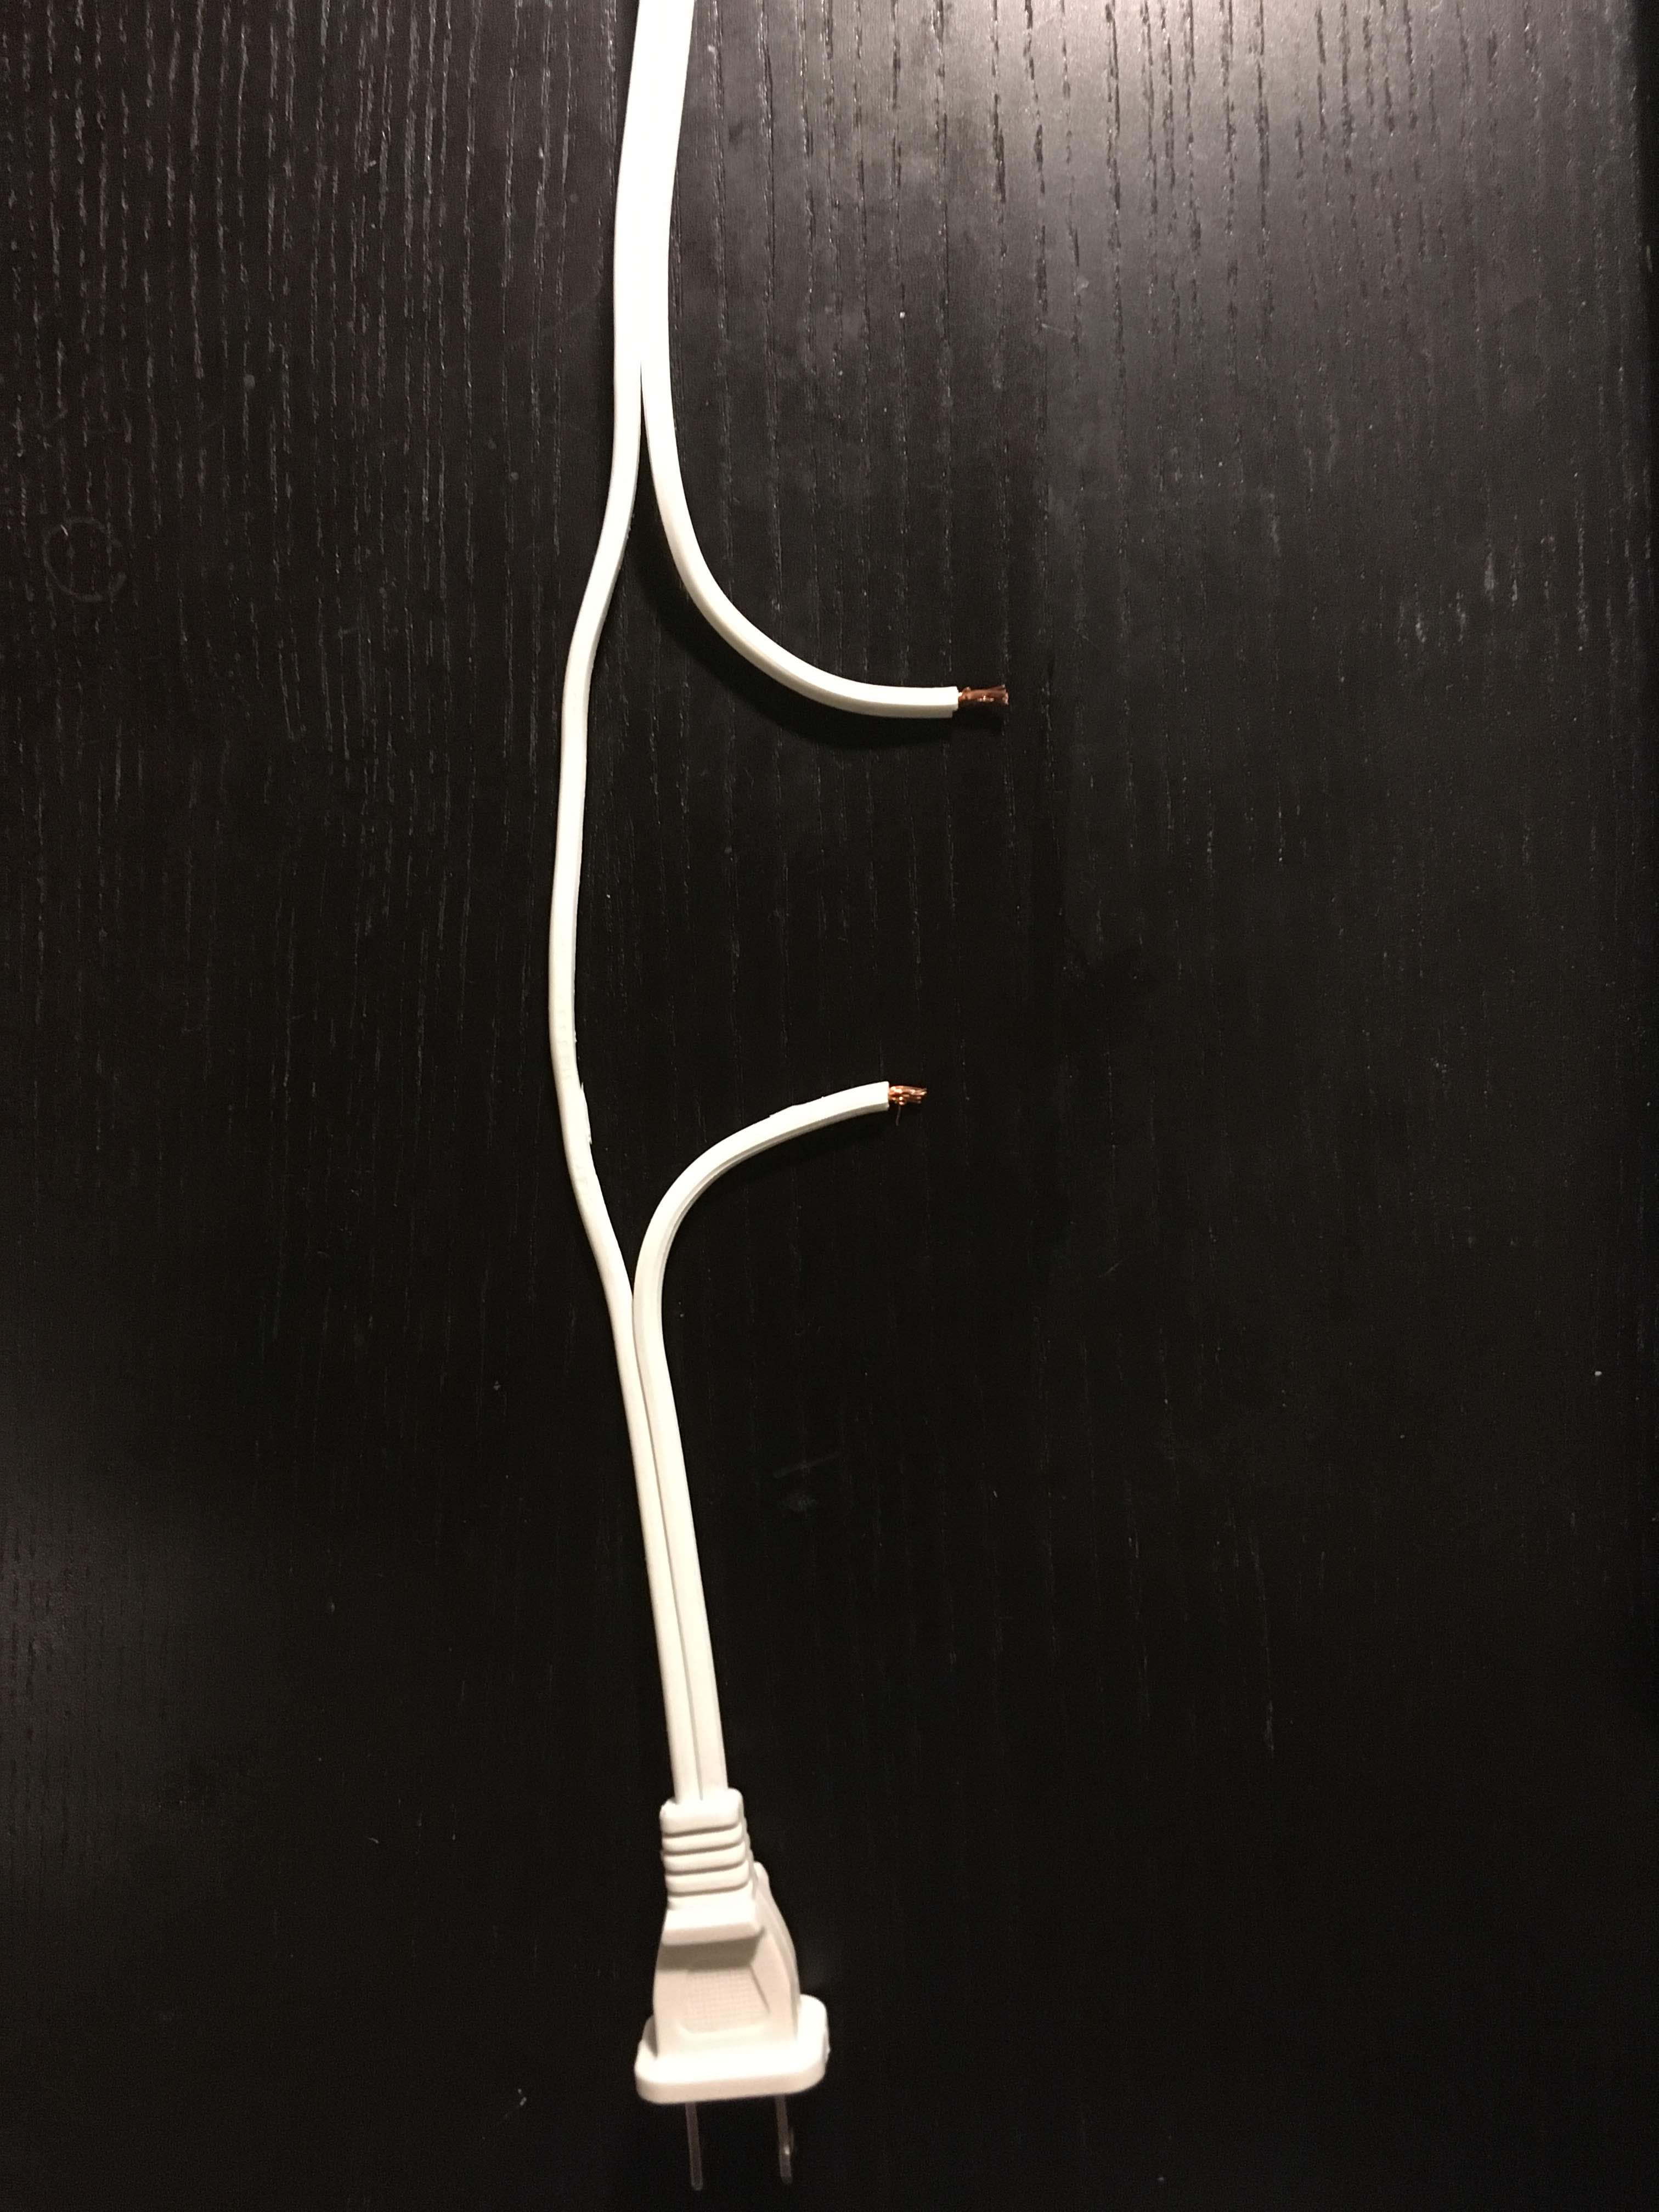 A split extension cable. The other wire is untouched.